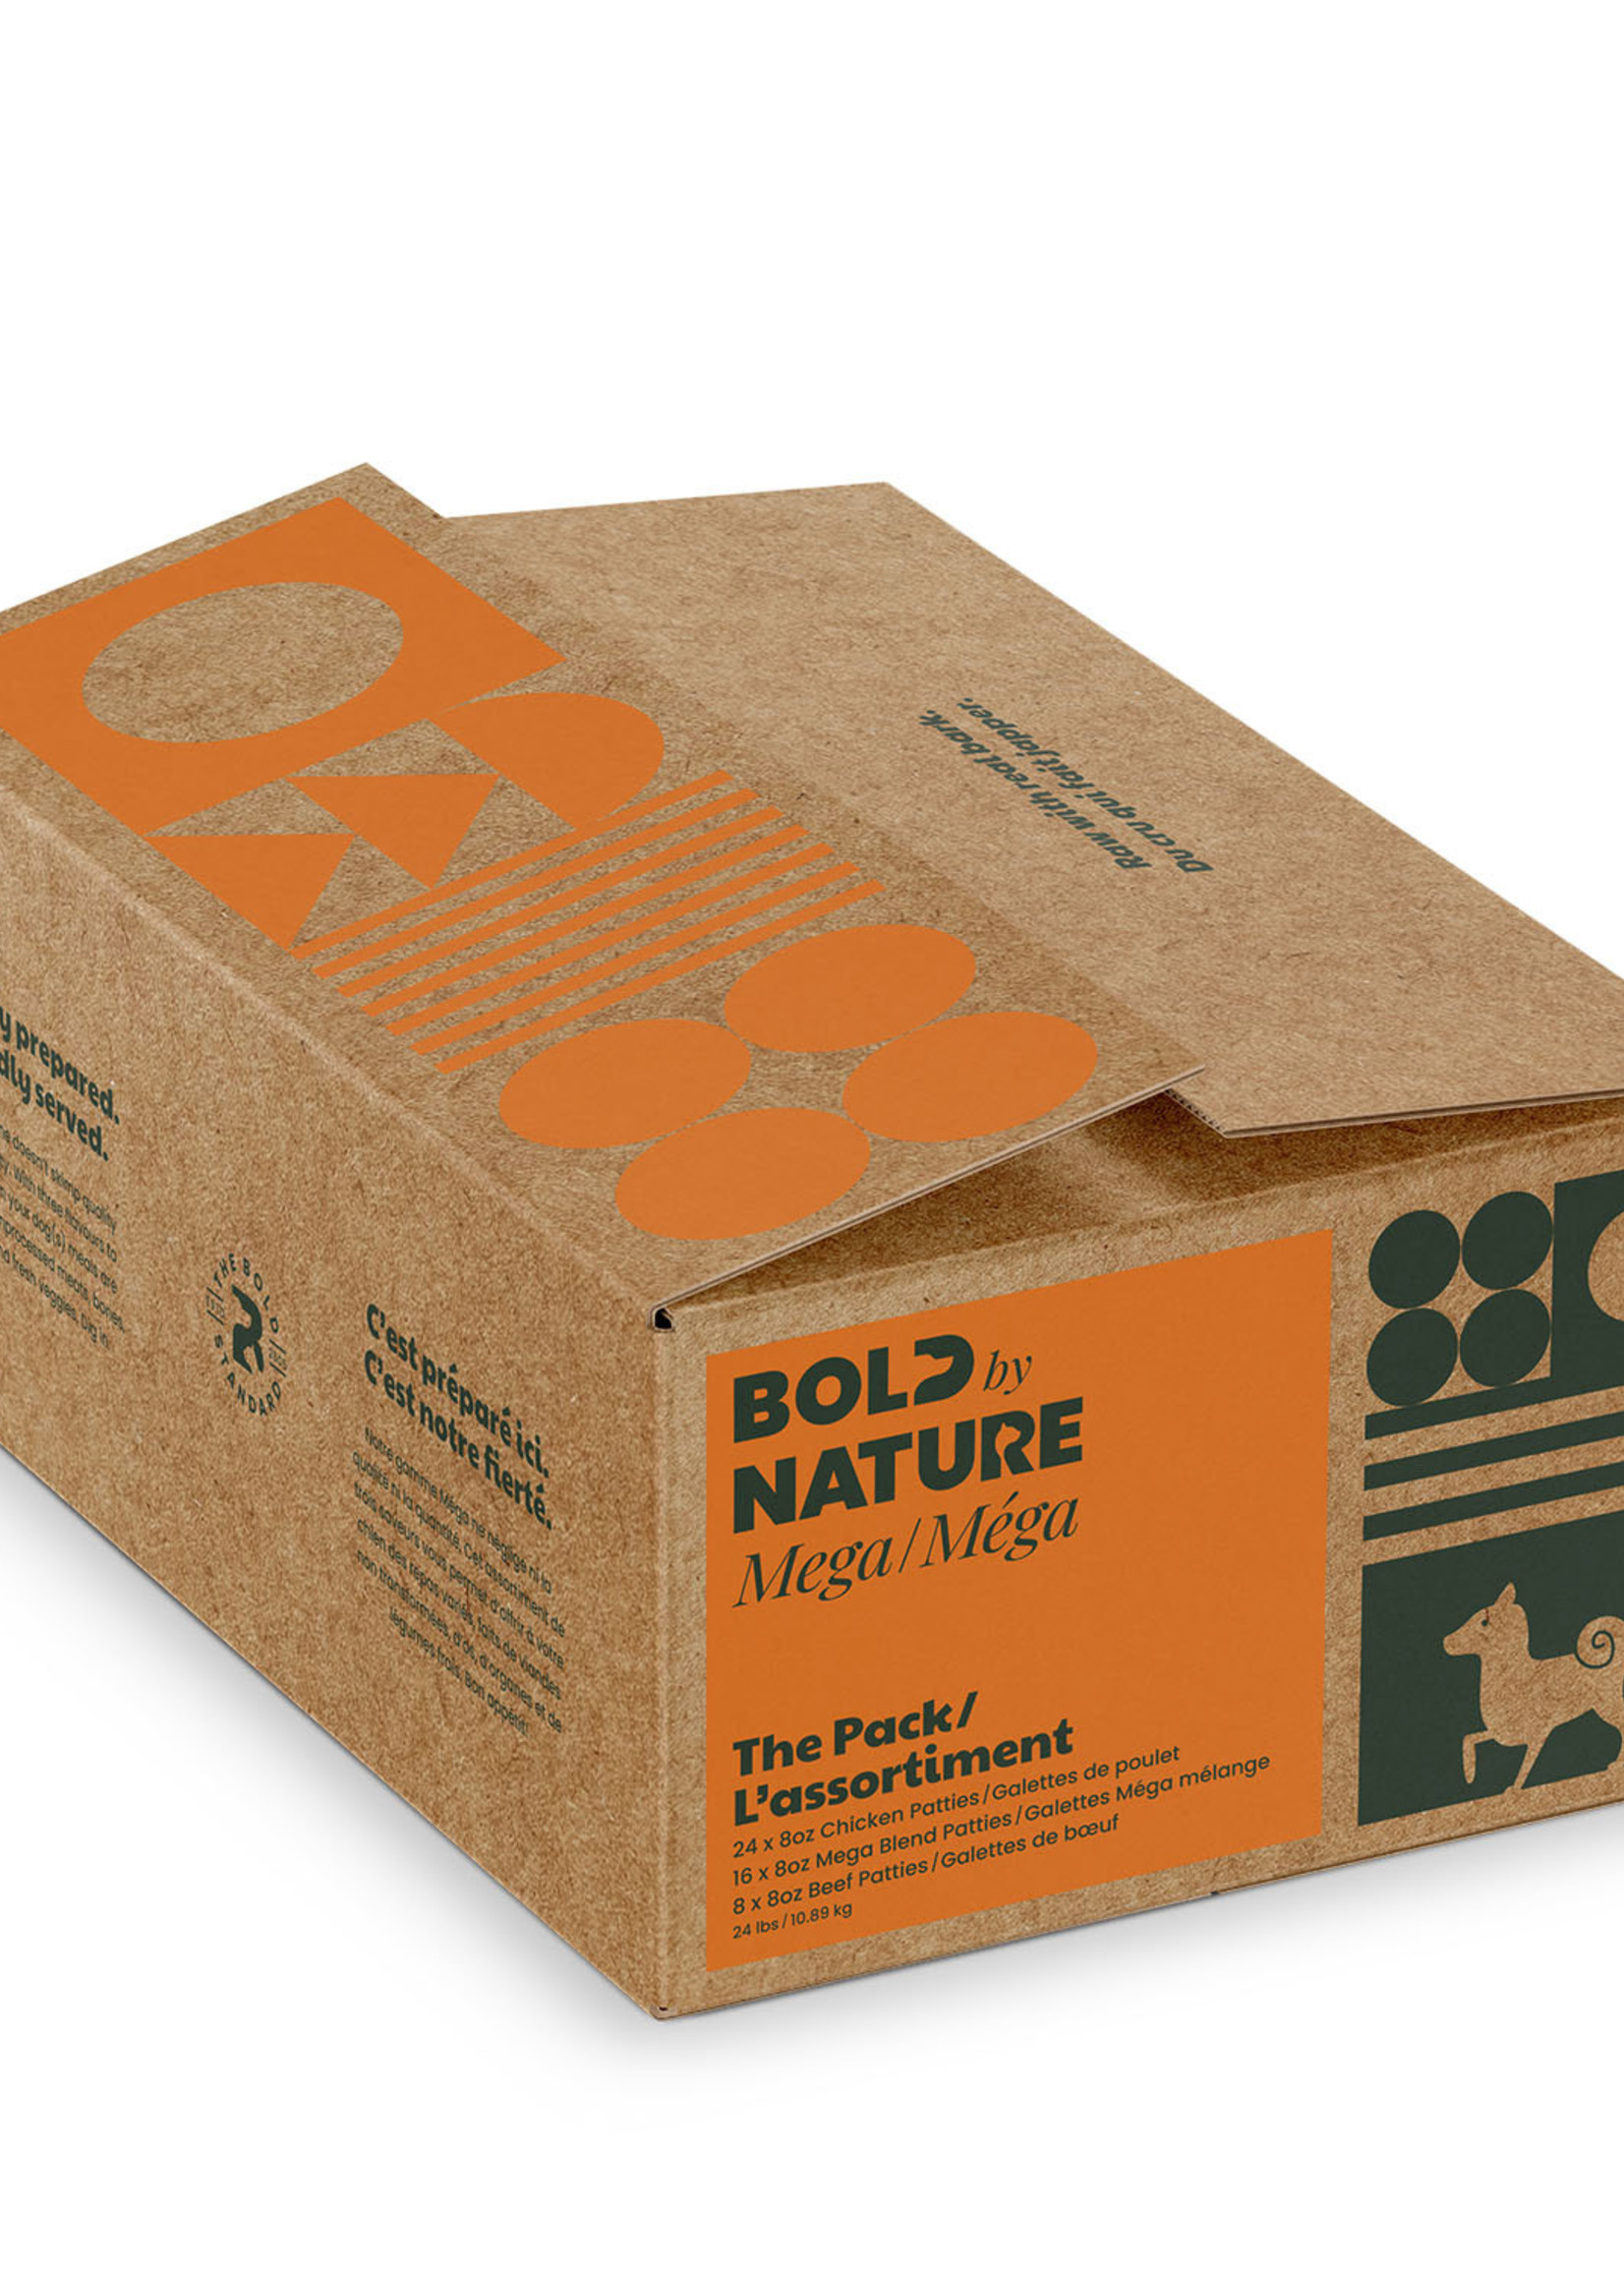 Mega Dog Raw Bold by Nature The Pack: Chicken Variety 24lbs